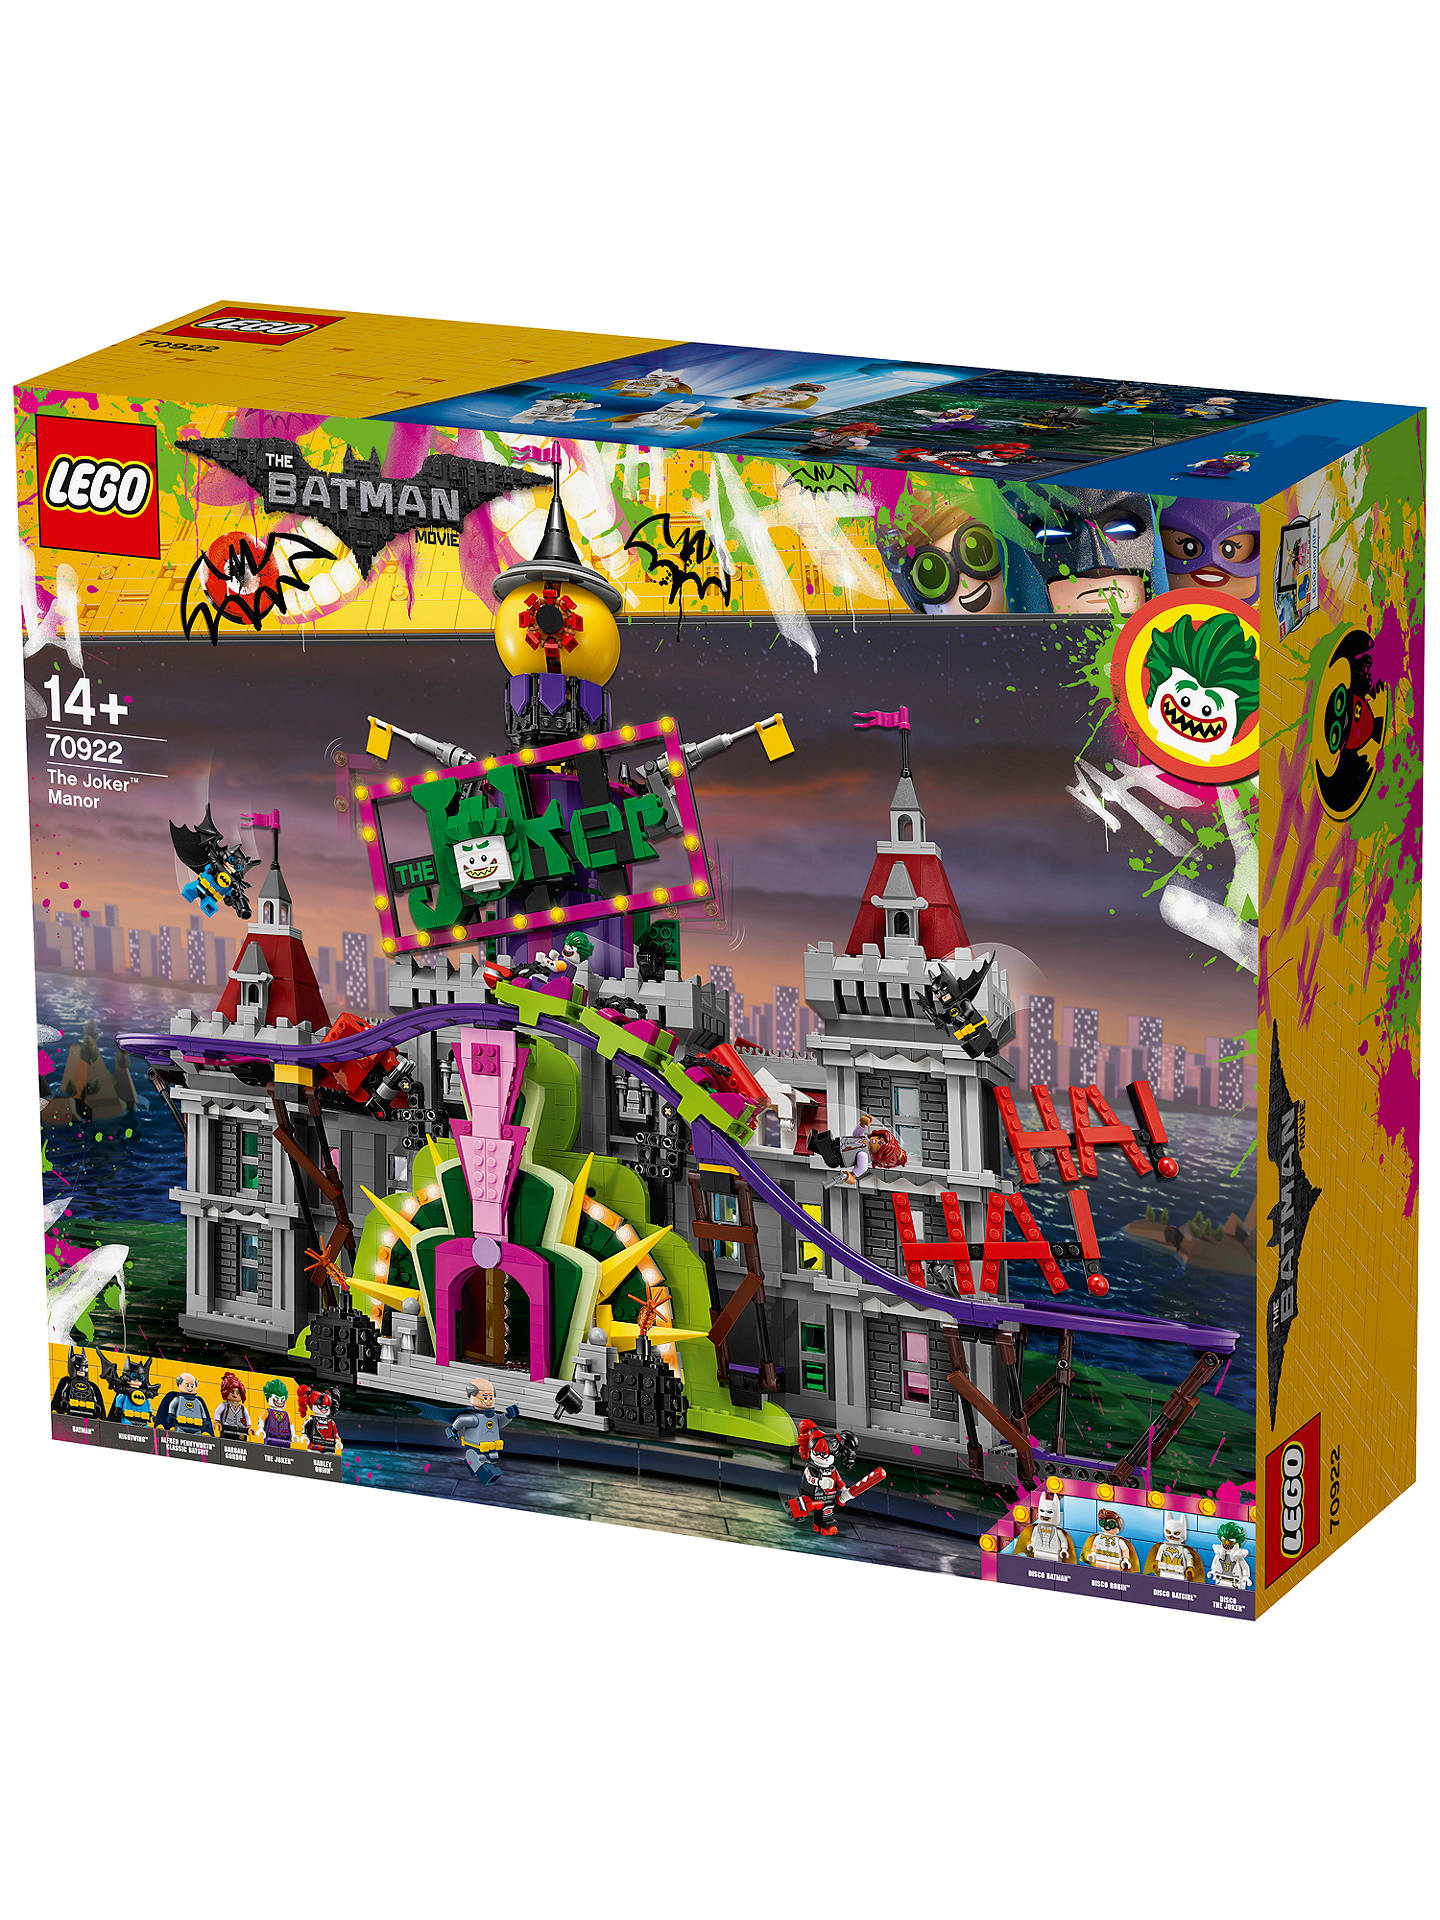 e394a1e2d934 ... Buy LEGO The LEGO Batman Movie 70922 The Joker Manor Online at  johnlewis.com ...